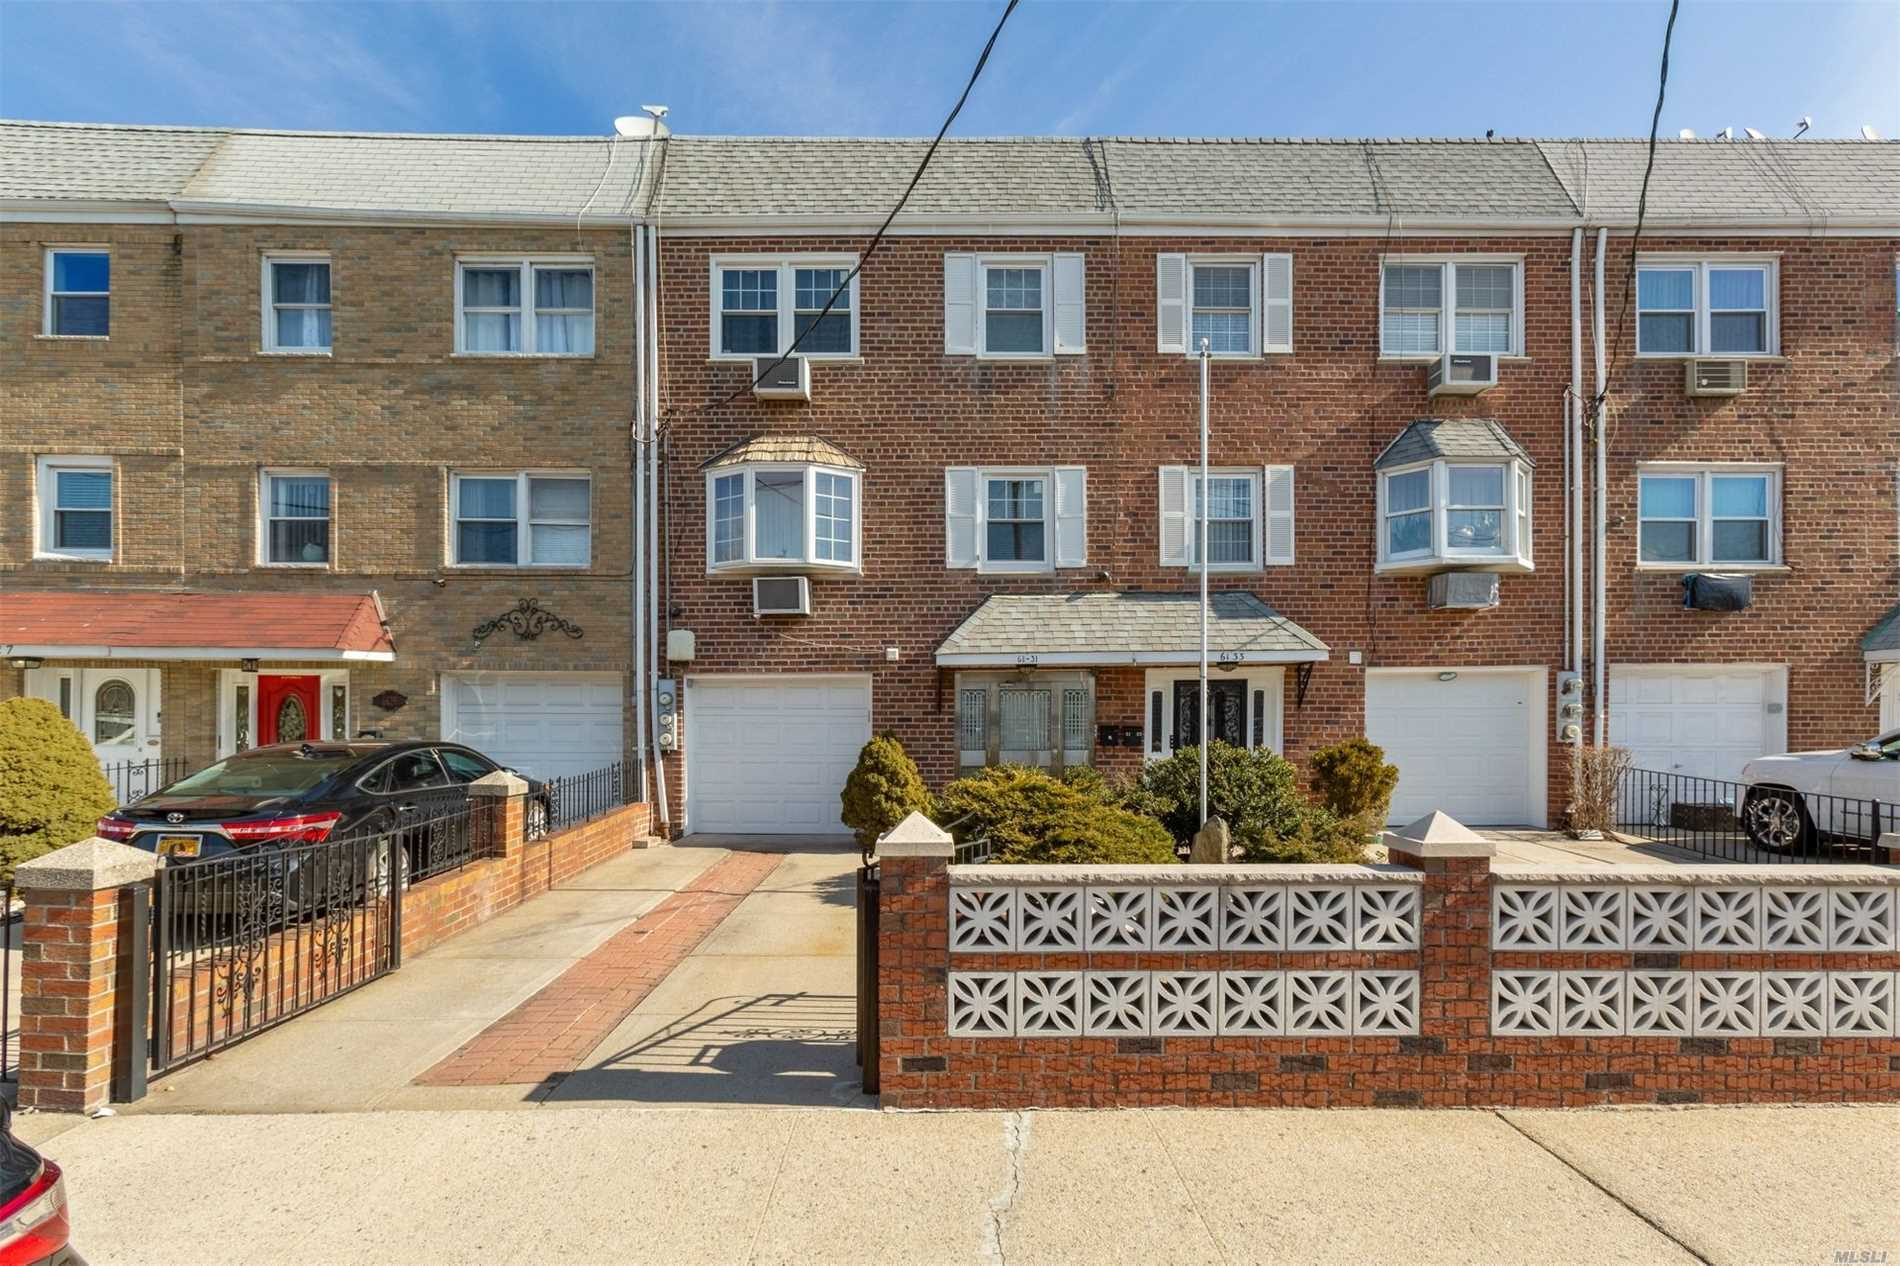 This Fabulous 2 Family + W/I Property Is Only A Few Feet From Juniper Valley Park. Close To Express Bus To Manhattan Featuring 6 Rms, 3 Bdrms & 1 Full Bath On 2nd & 3rd Fl And The Ground Fl Has A 3 Rm W/I. The Modern Kitchens Boast Granite Counters & S/S Applainces, Hardwood Floors Thru Out. The Modern Bathrooms Compliment The Apartments And The Private Backyard Is Ideal For Entertaining. Never Look For Parking Again With A 1 Car Garage And Private Driveway In Front Of The Home.